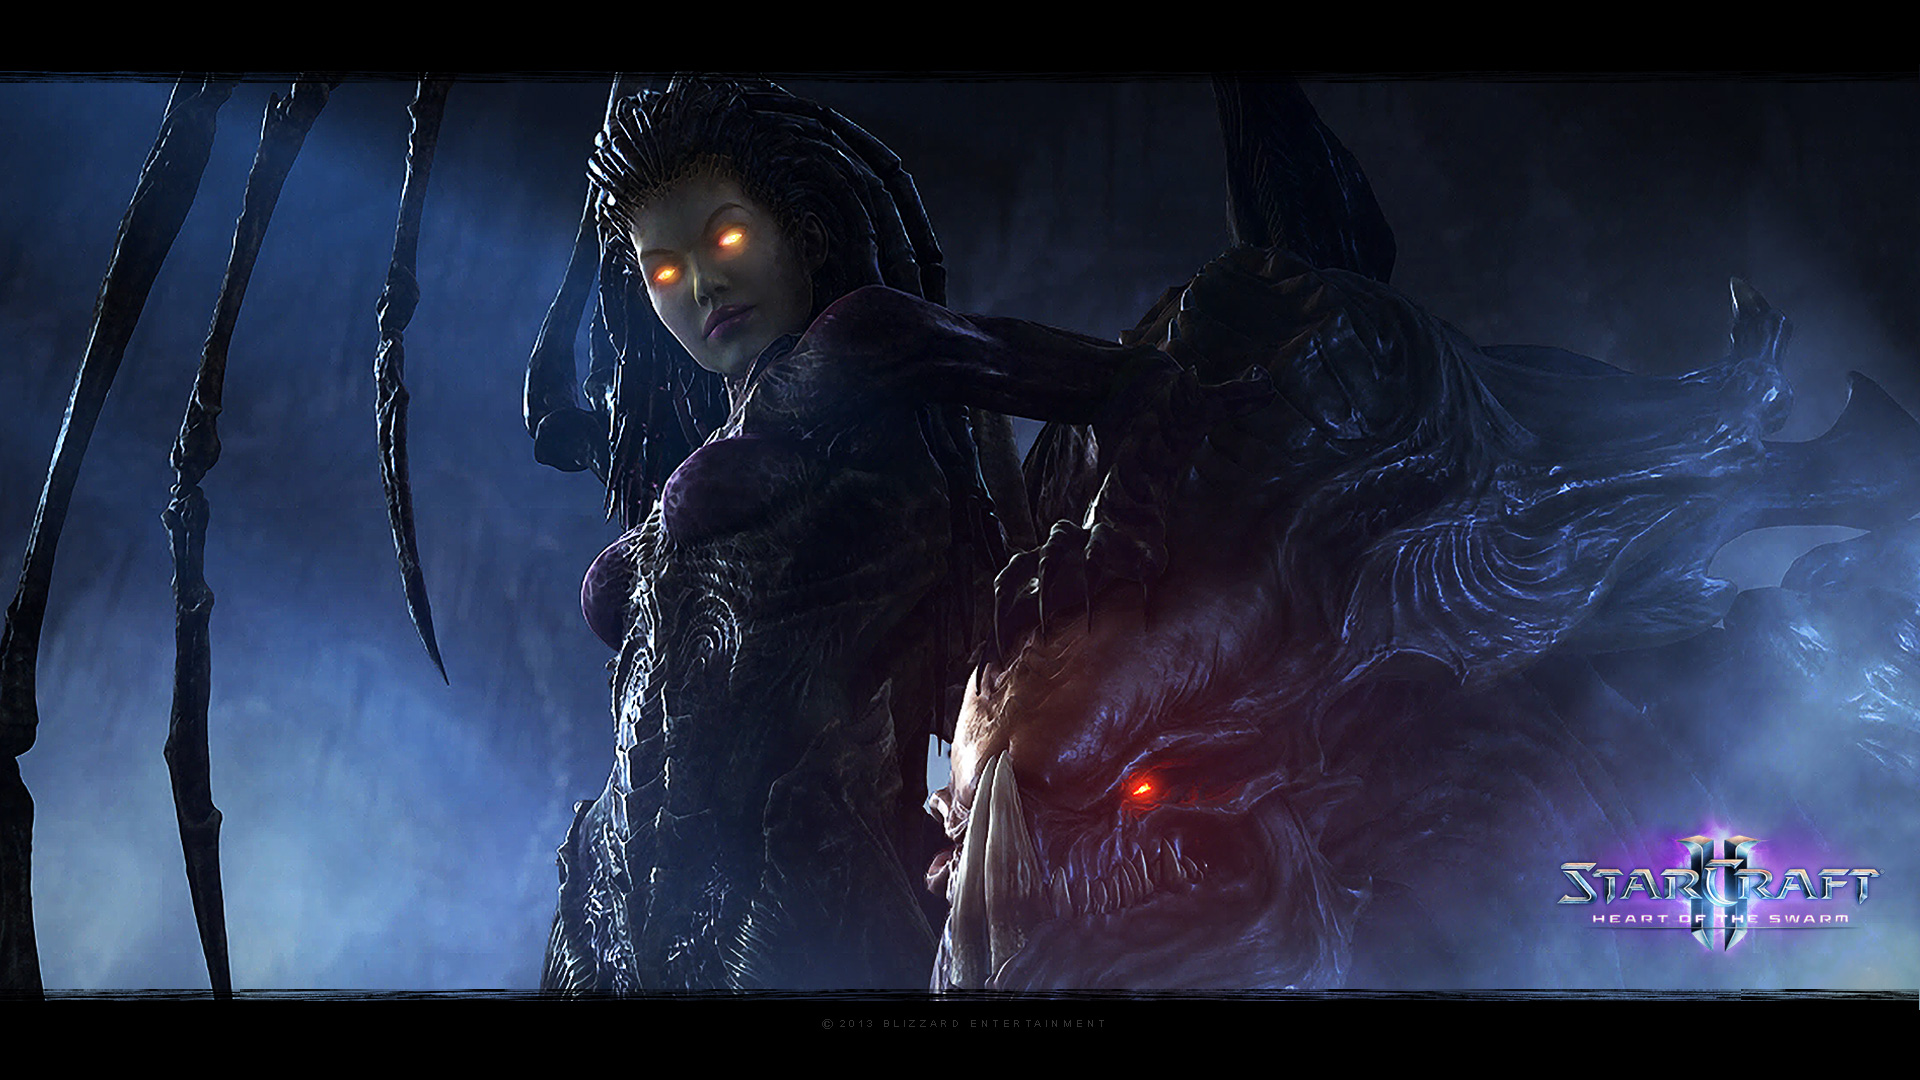 Starcraft Ii Heart Of The Swarm 2013 Promotional Art